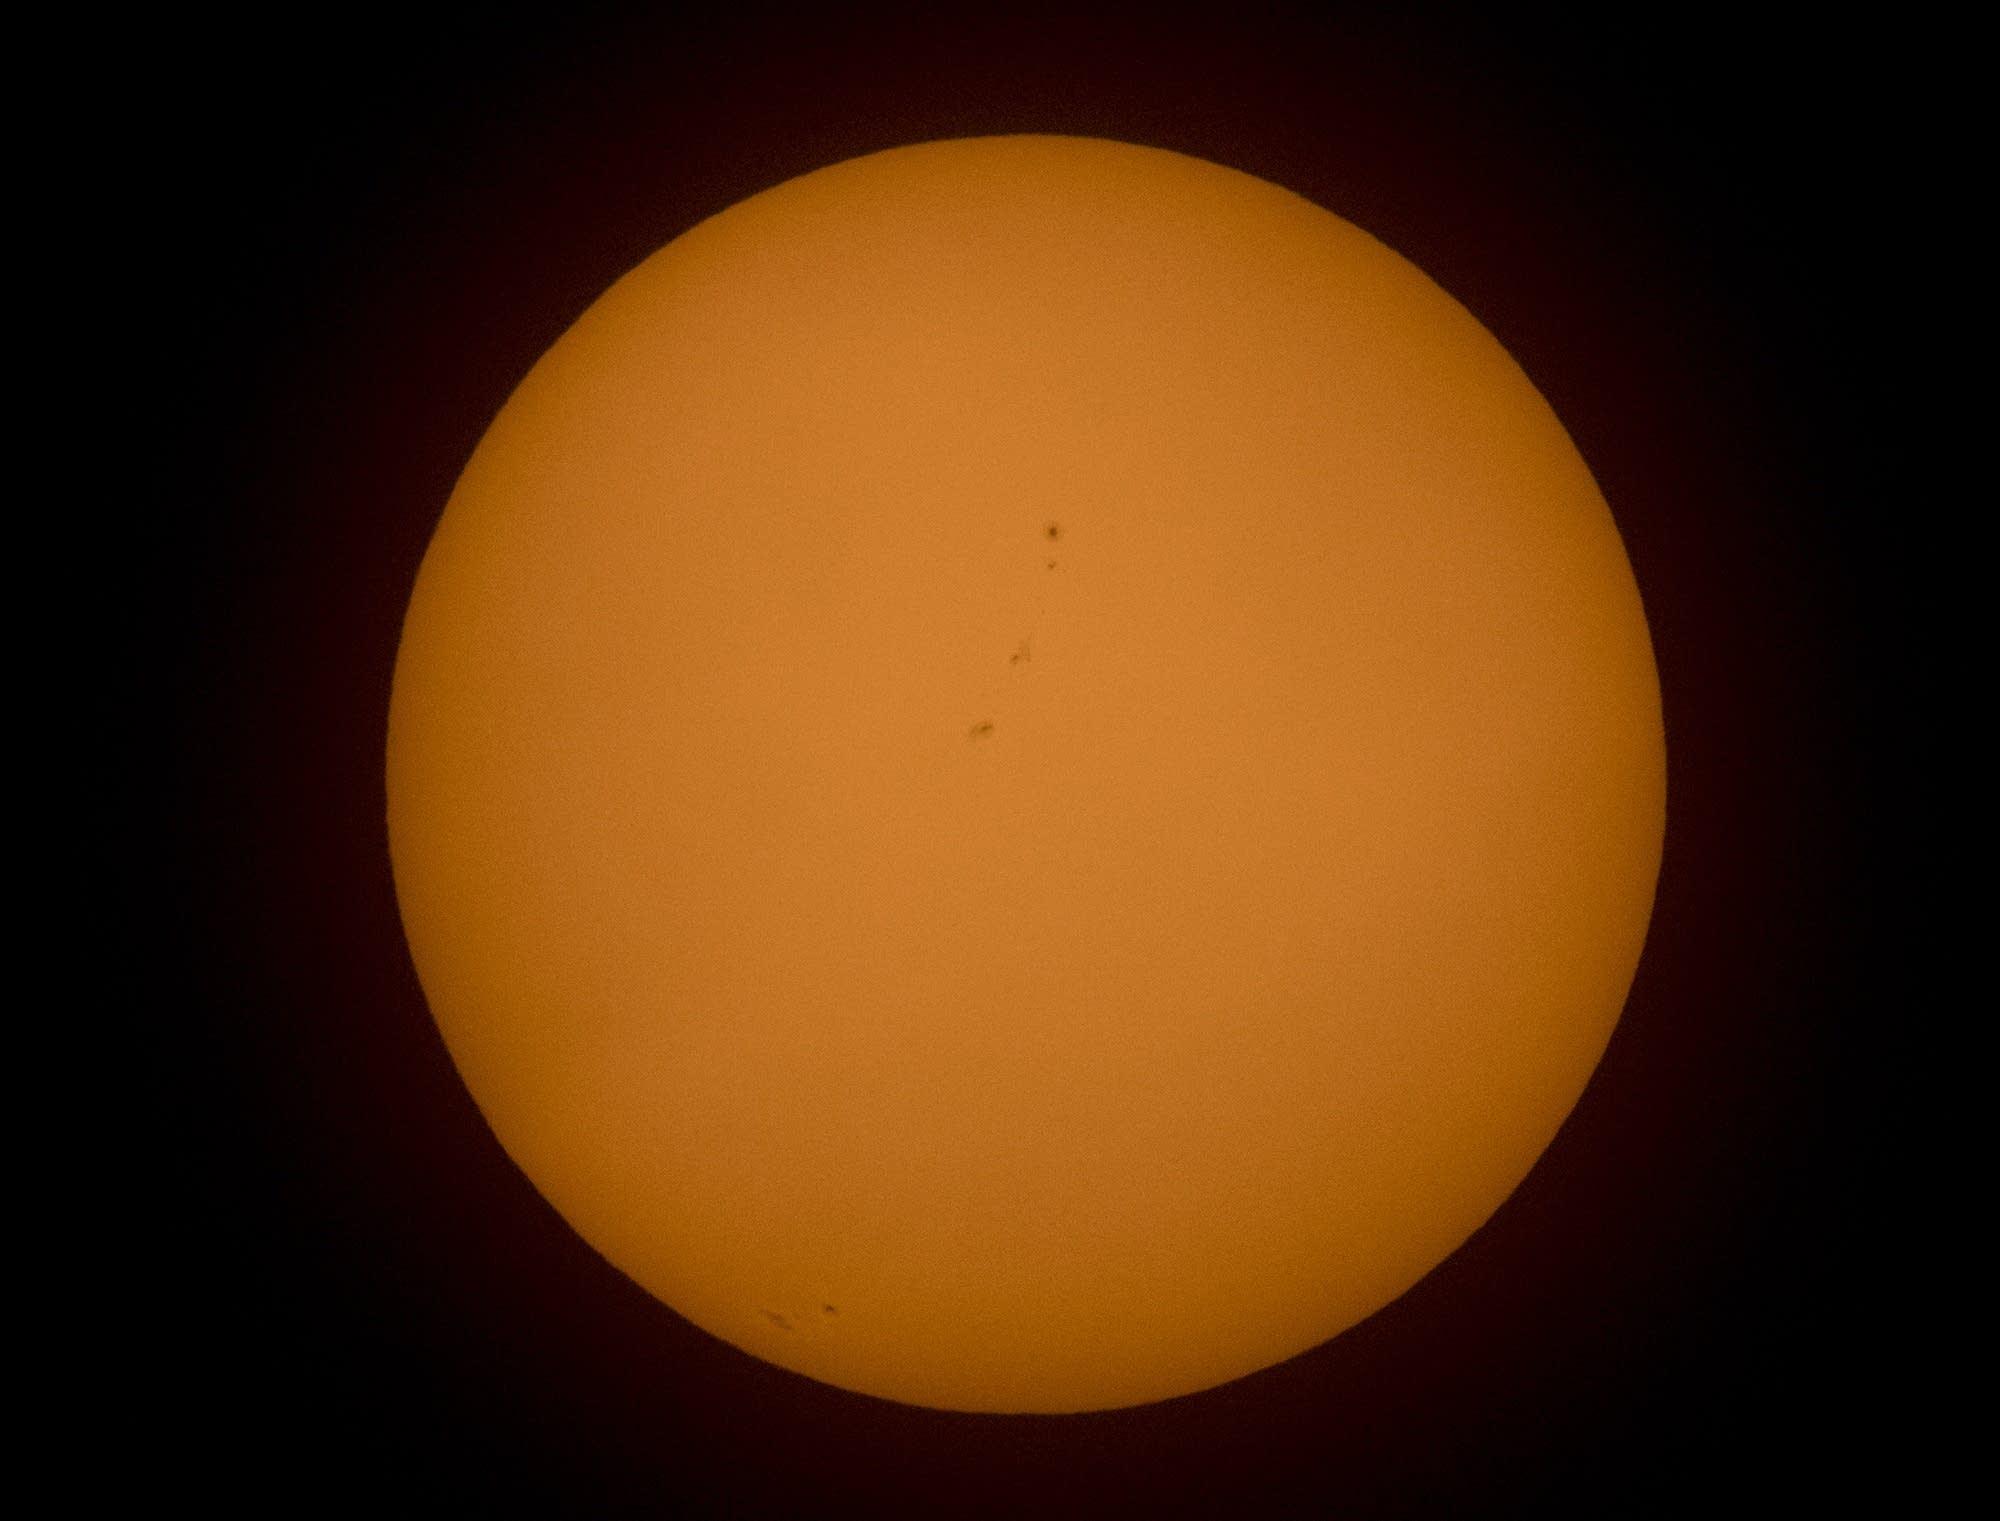 Sunspots can be seen on the lower part and center of the sun.